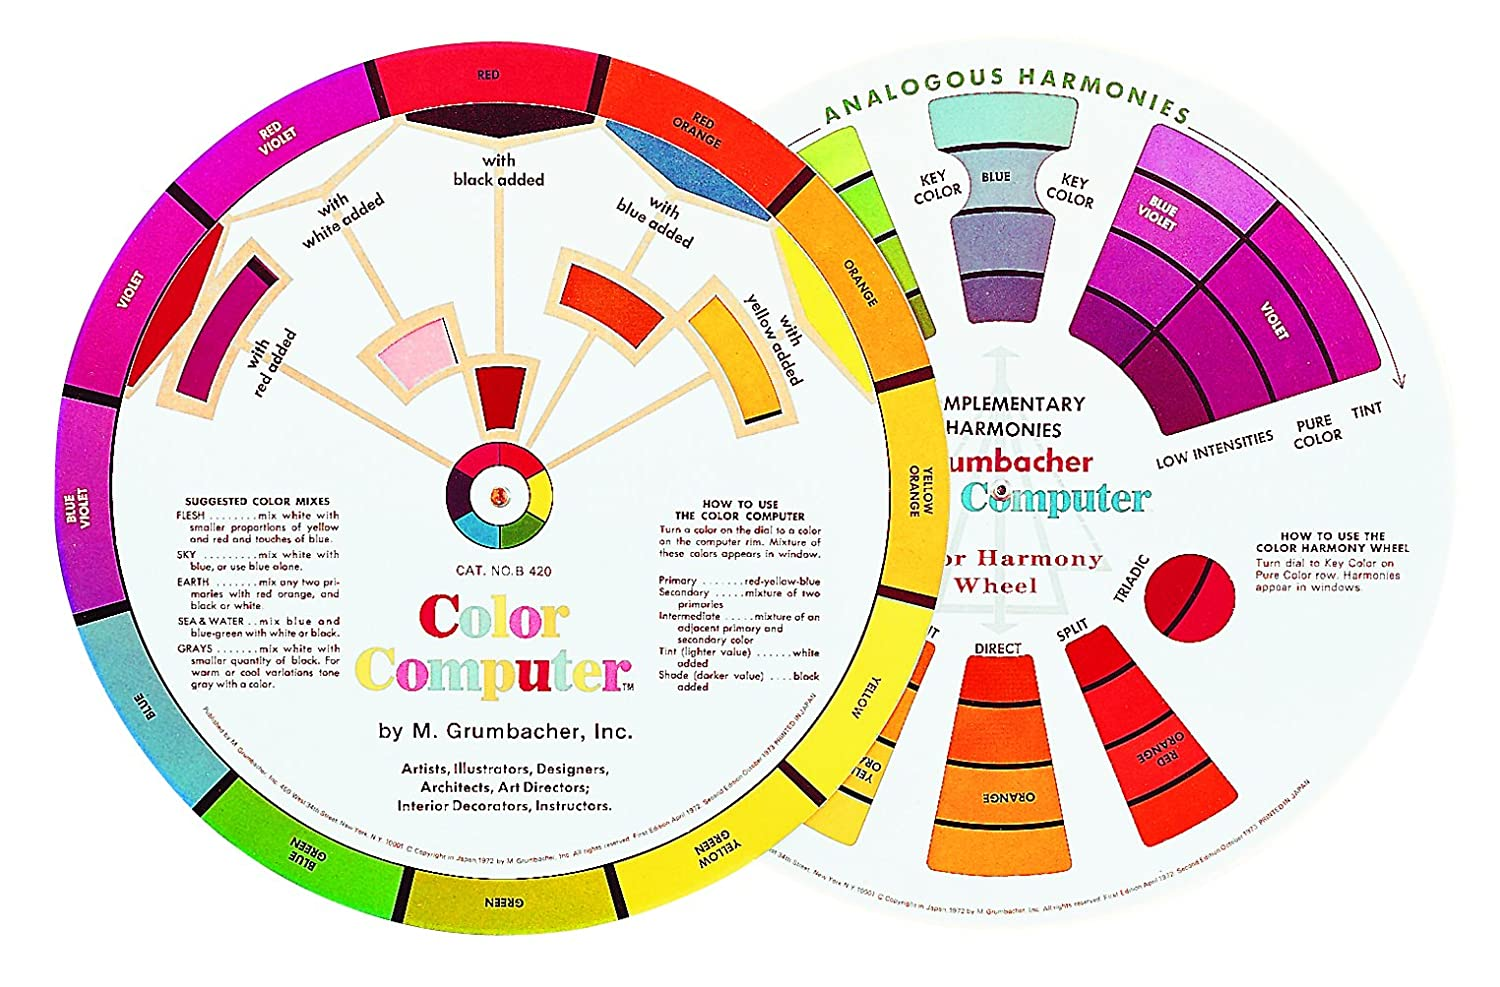 Color circle art publishing - Amazon Com Grumbacher Computer Color Wheel 8 Dia Arts Crafts Sewing